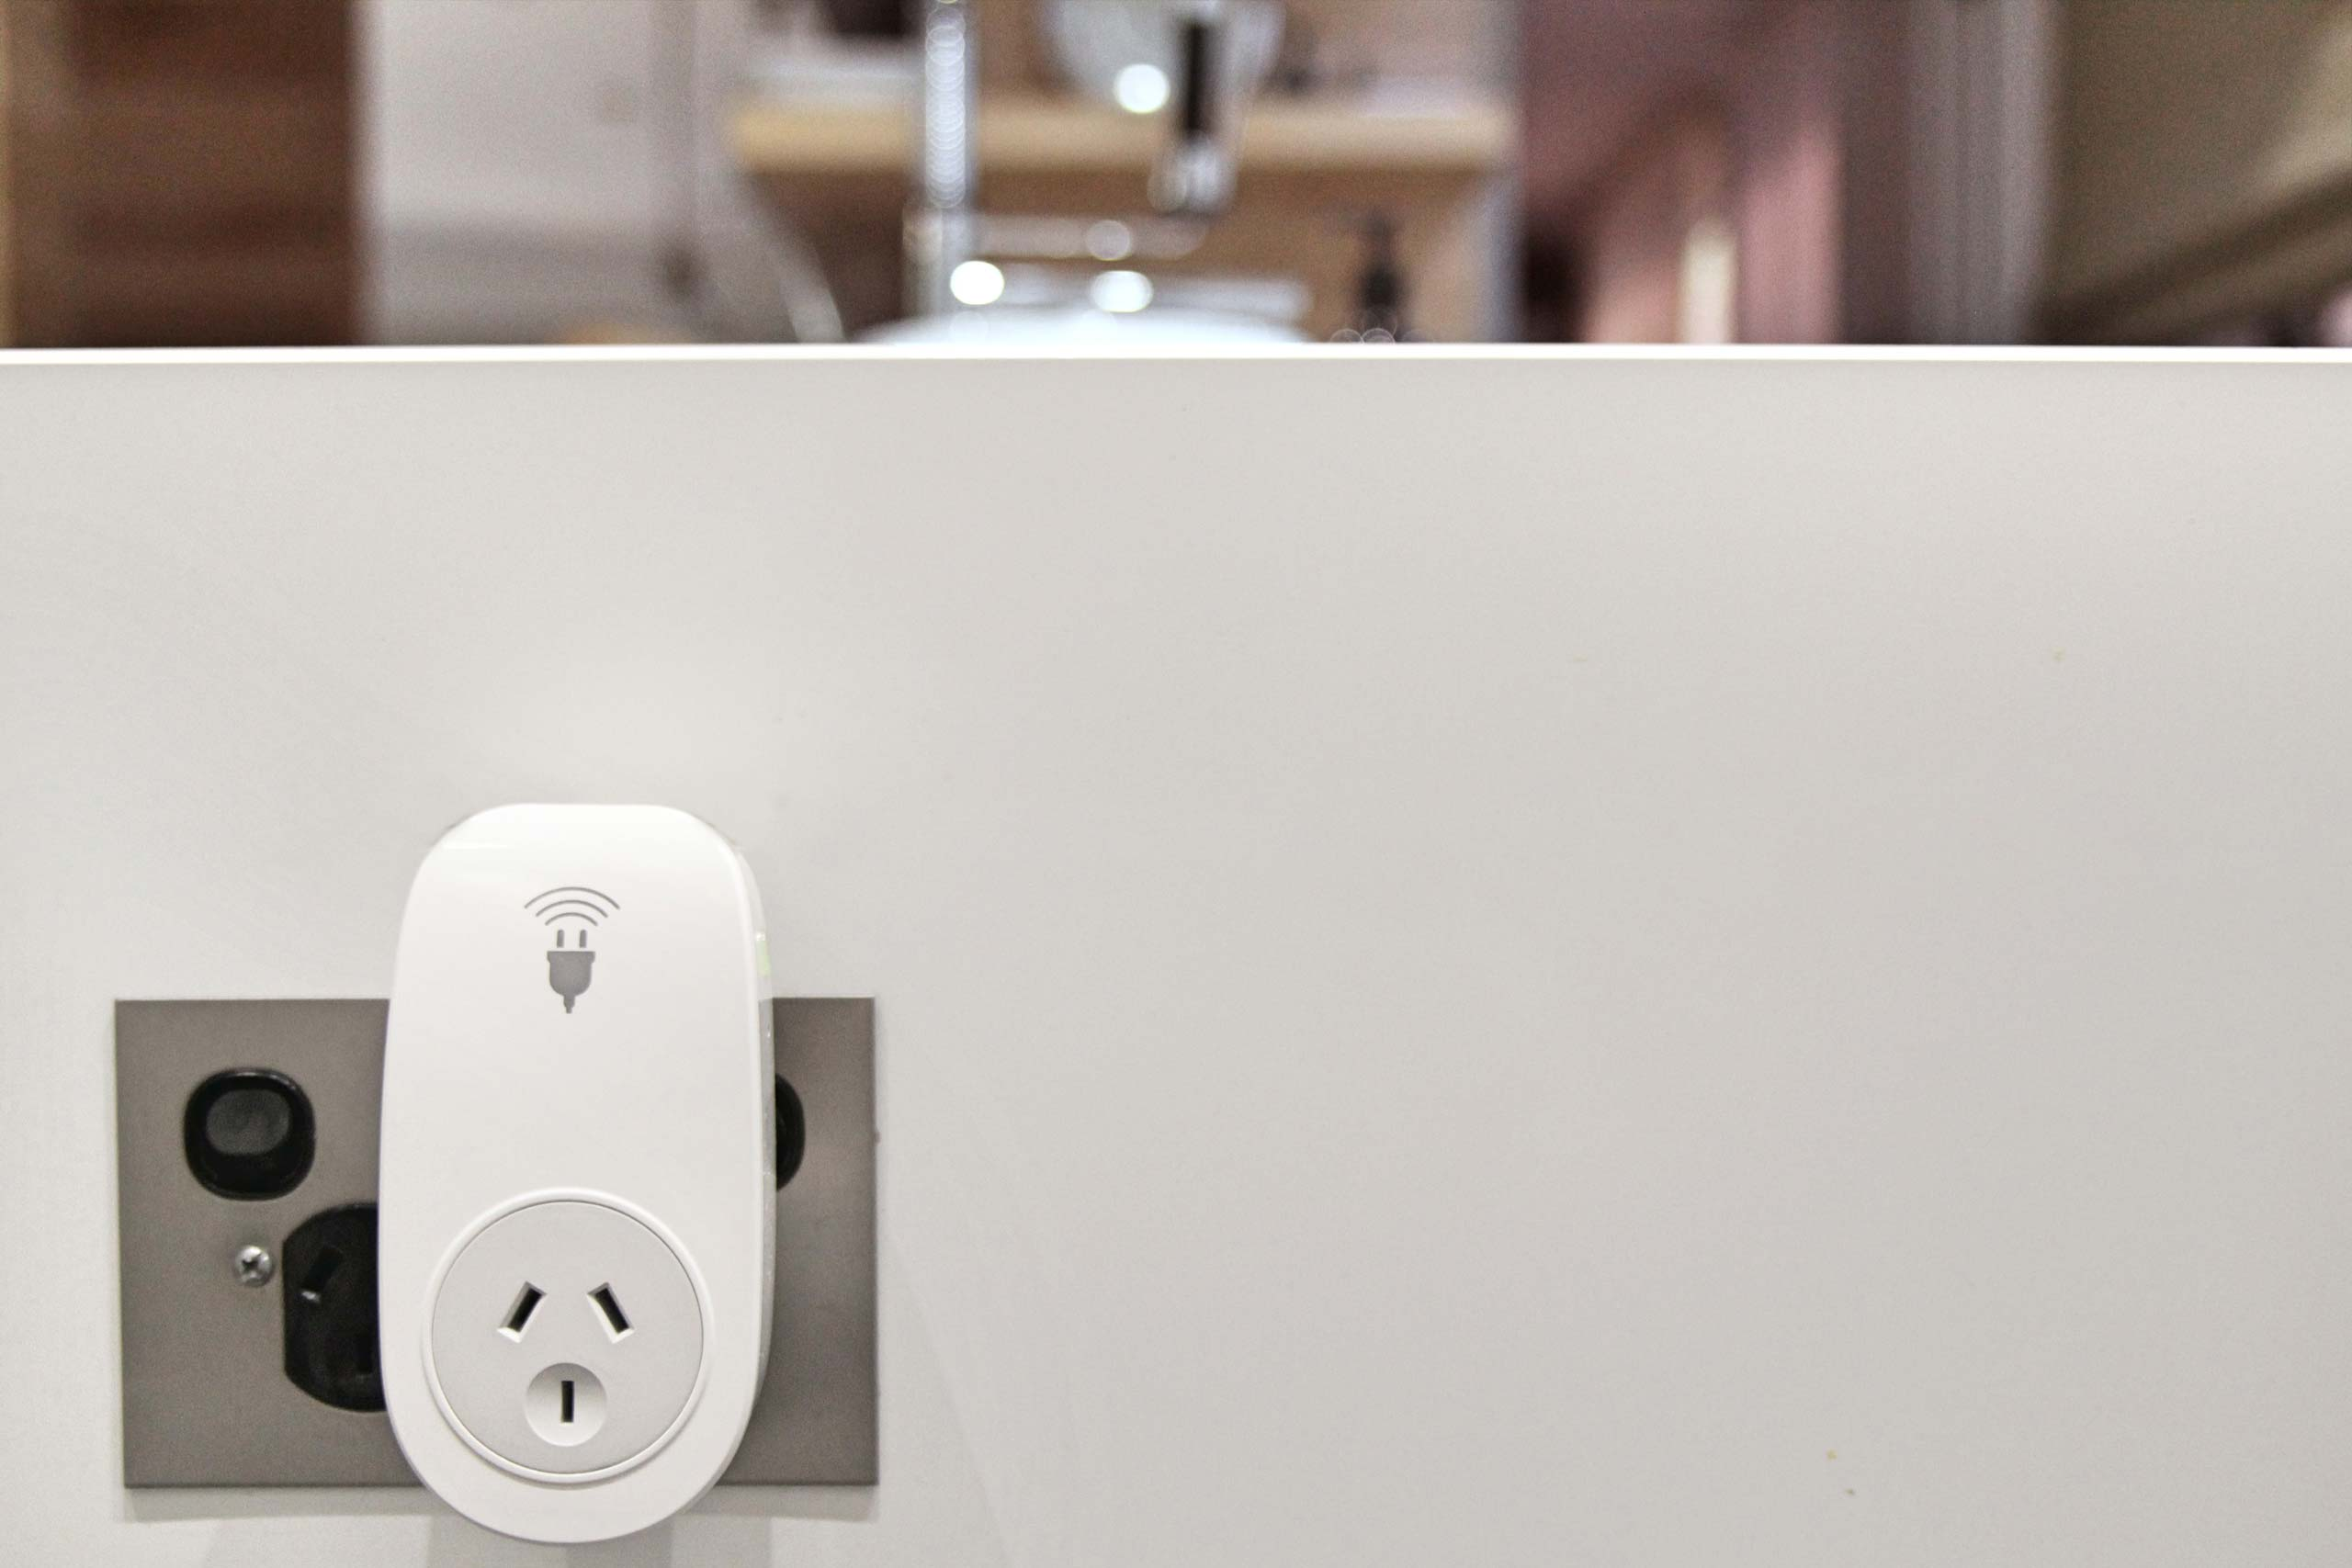 Smart plug in the lounge room